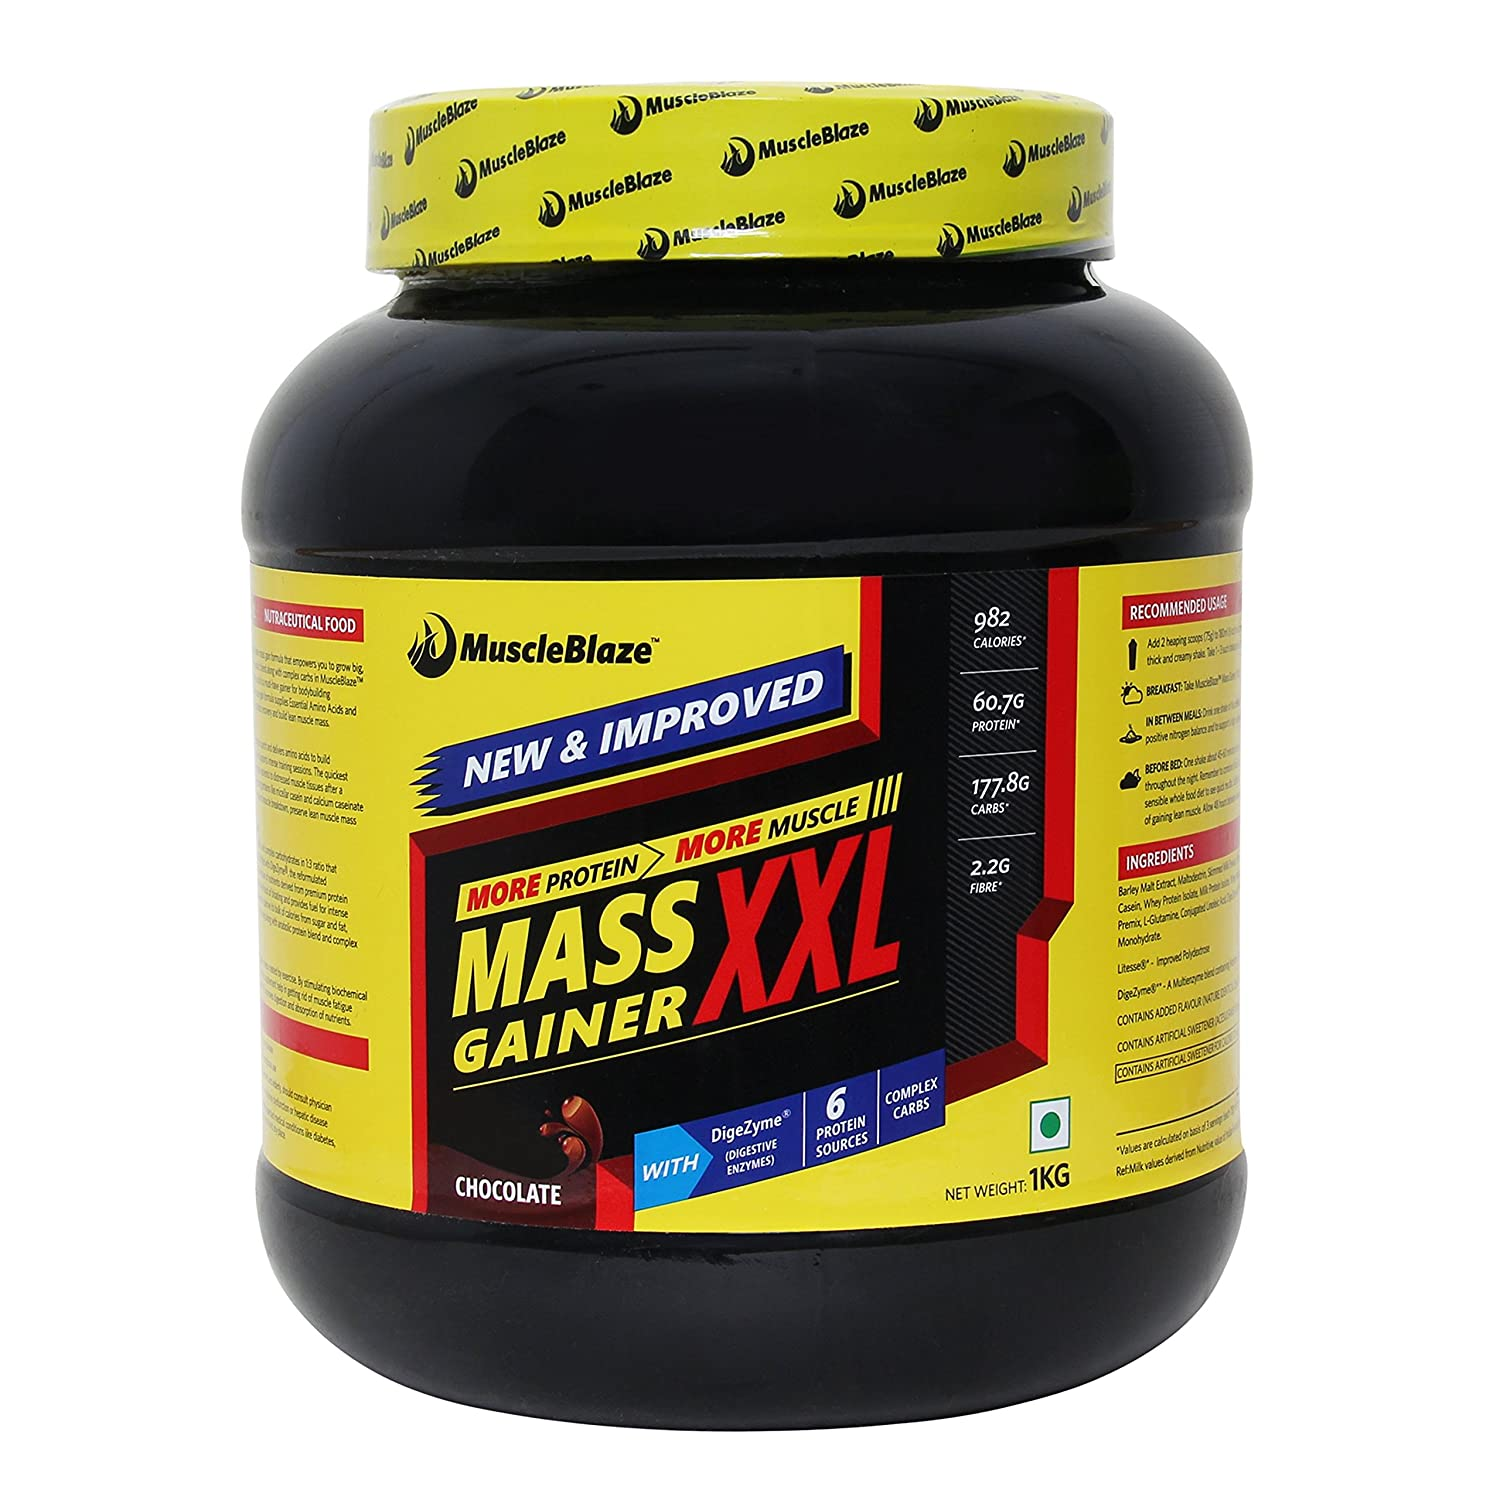 Upto 30% Off On Sports Supplements By Amazon | MuscleBlaze Mass Gainer XXL, 1kg / 2.2 lb Chocolate @ Rs.899